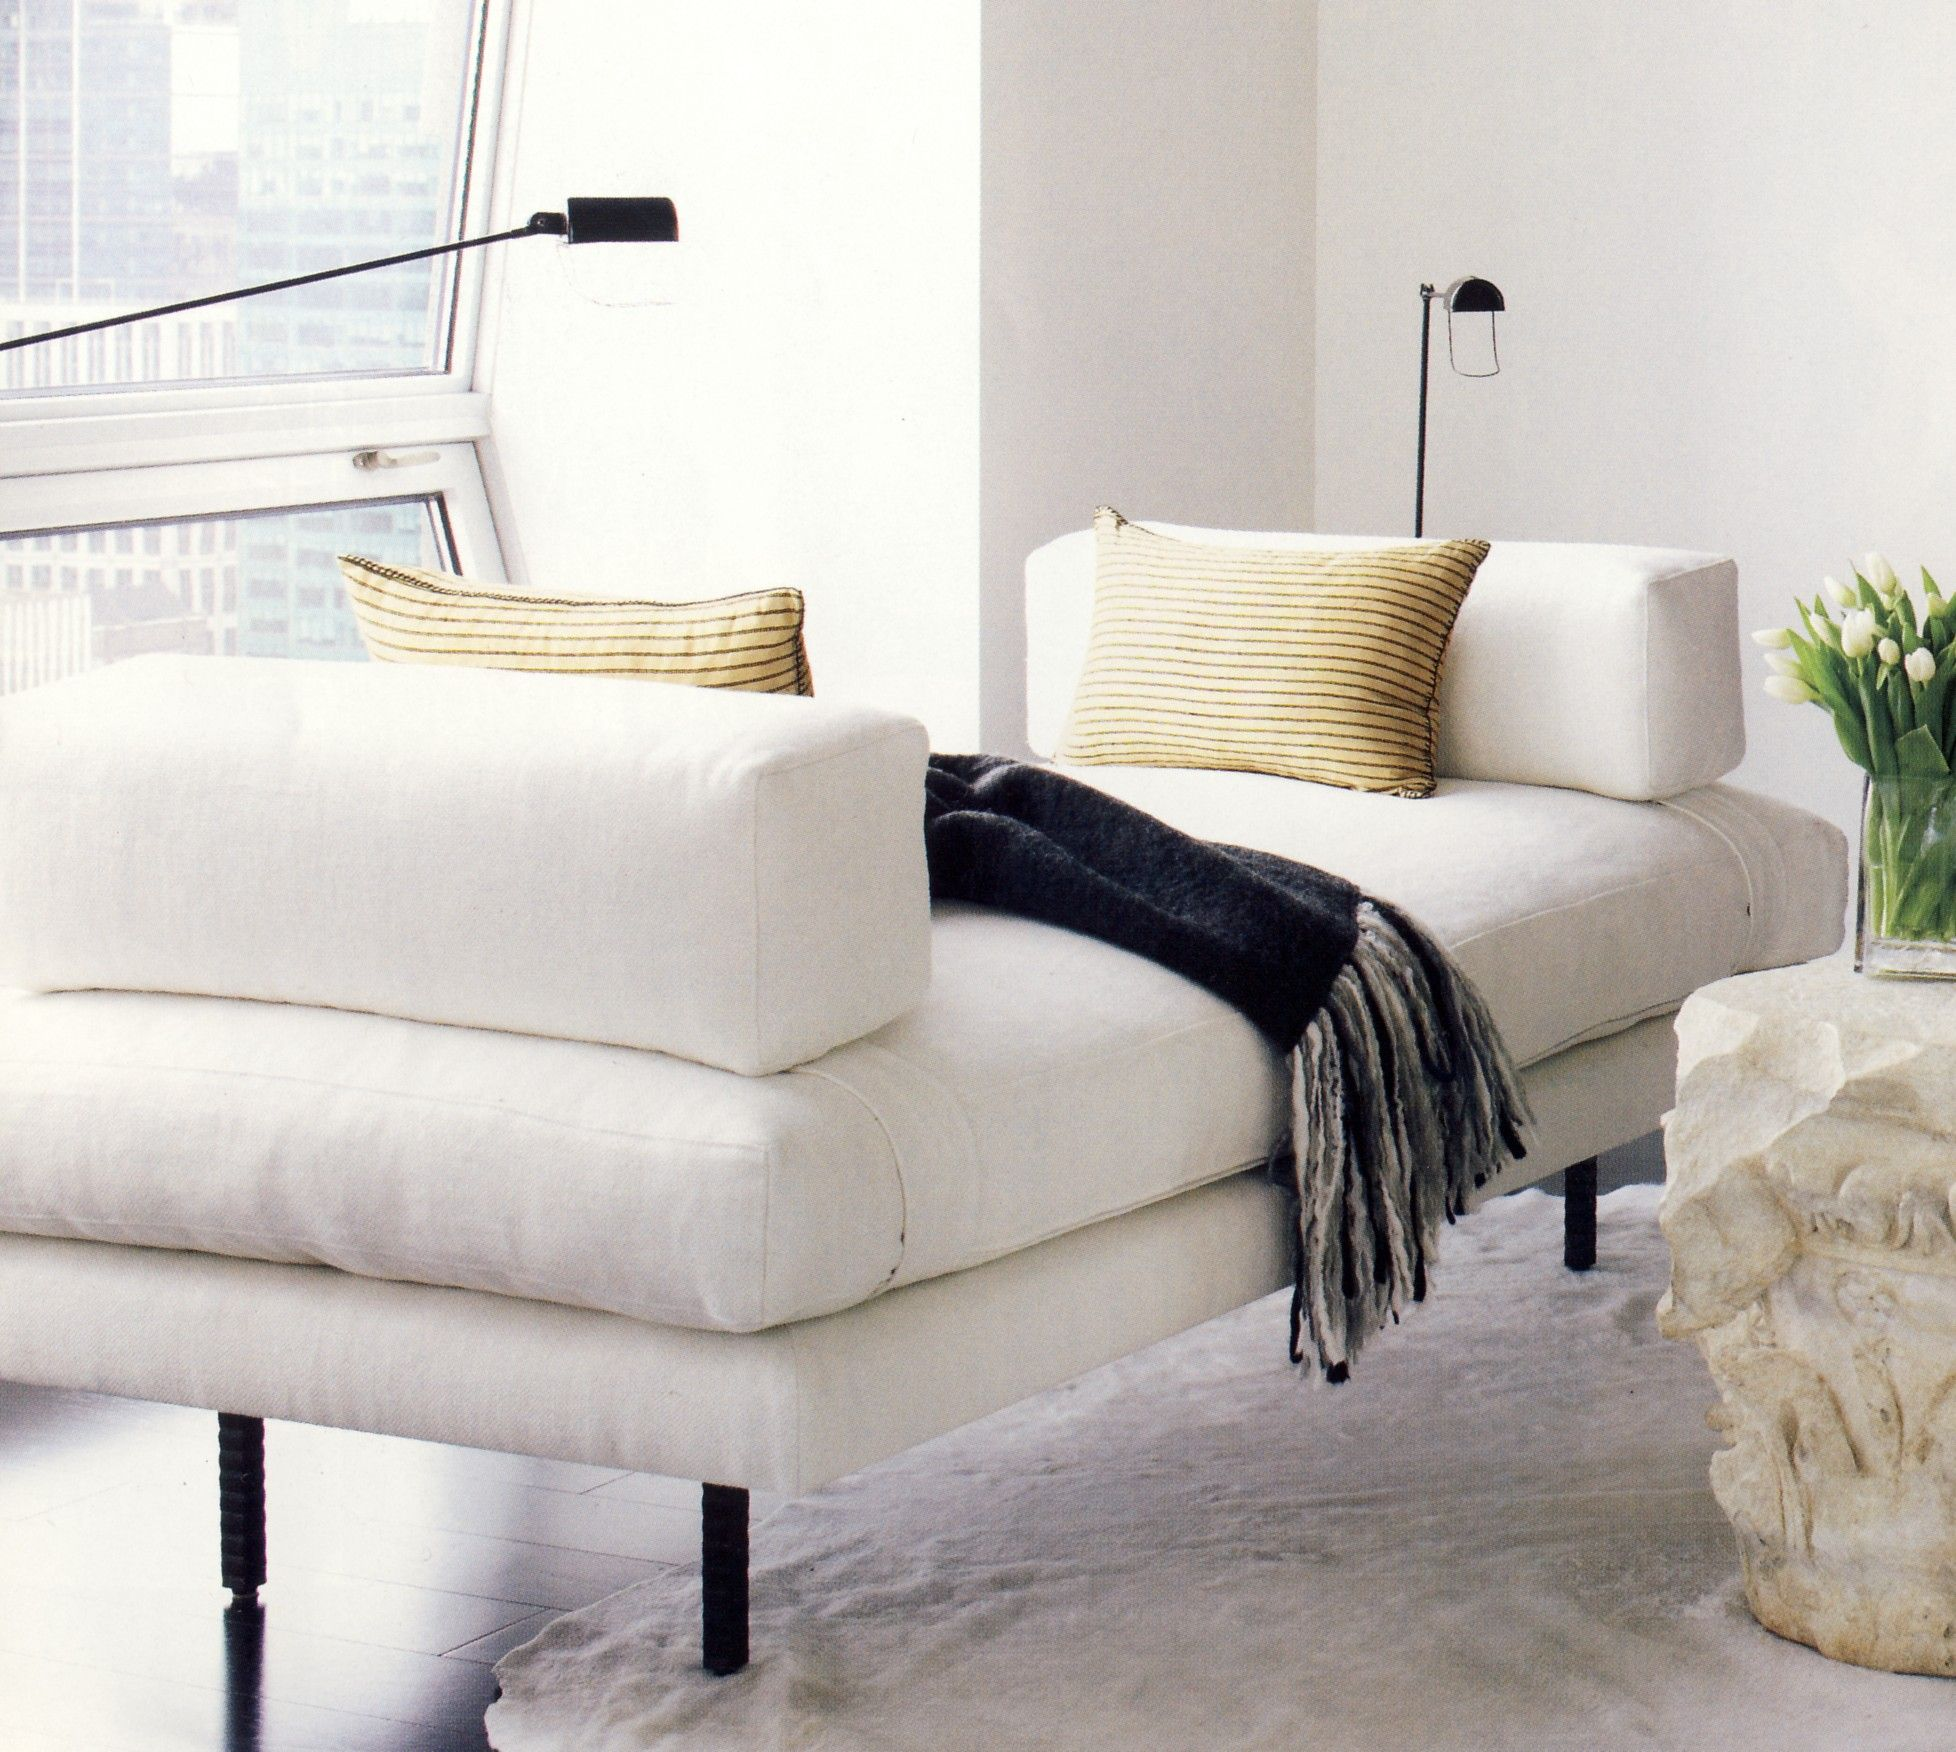 Chaise for the foot of the bed Furniture decor, Chaise